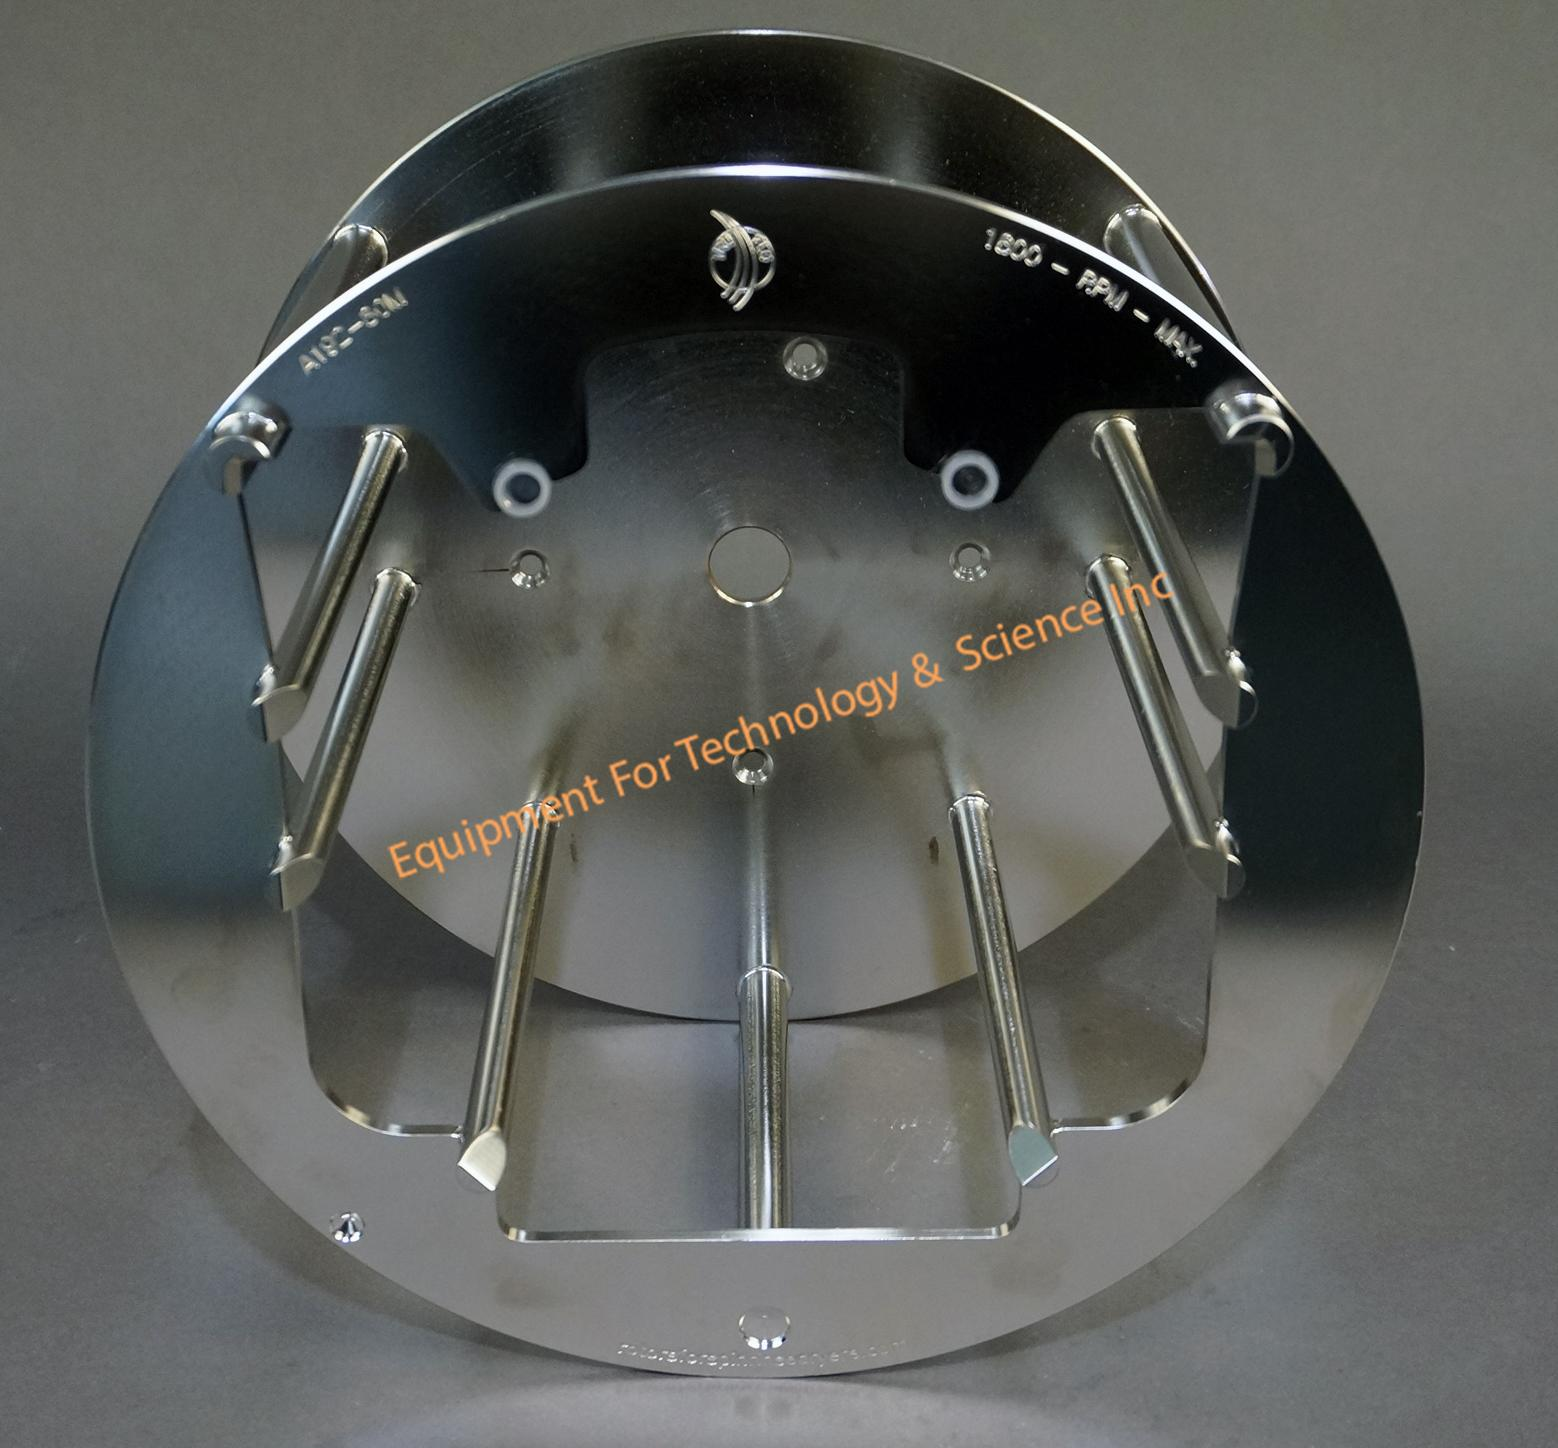 Verteq A182-80M rotor for 200mm wafers